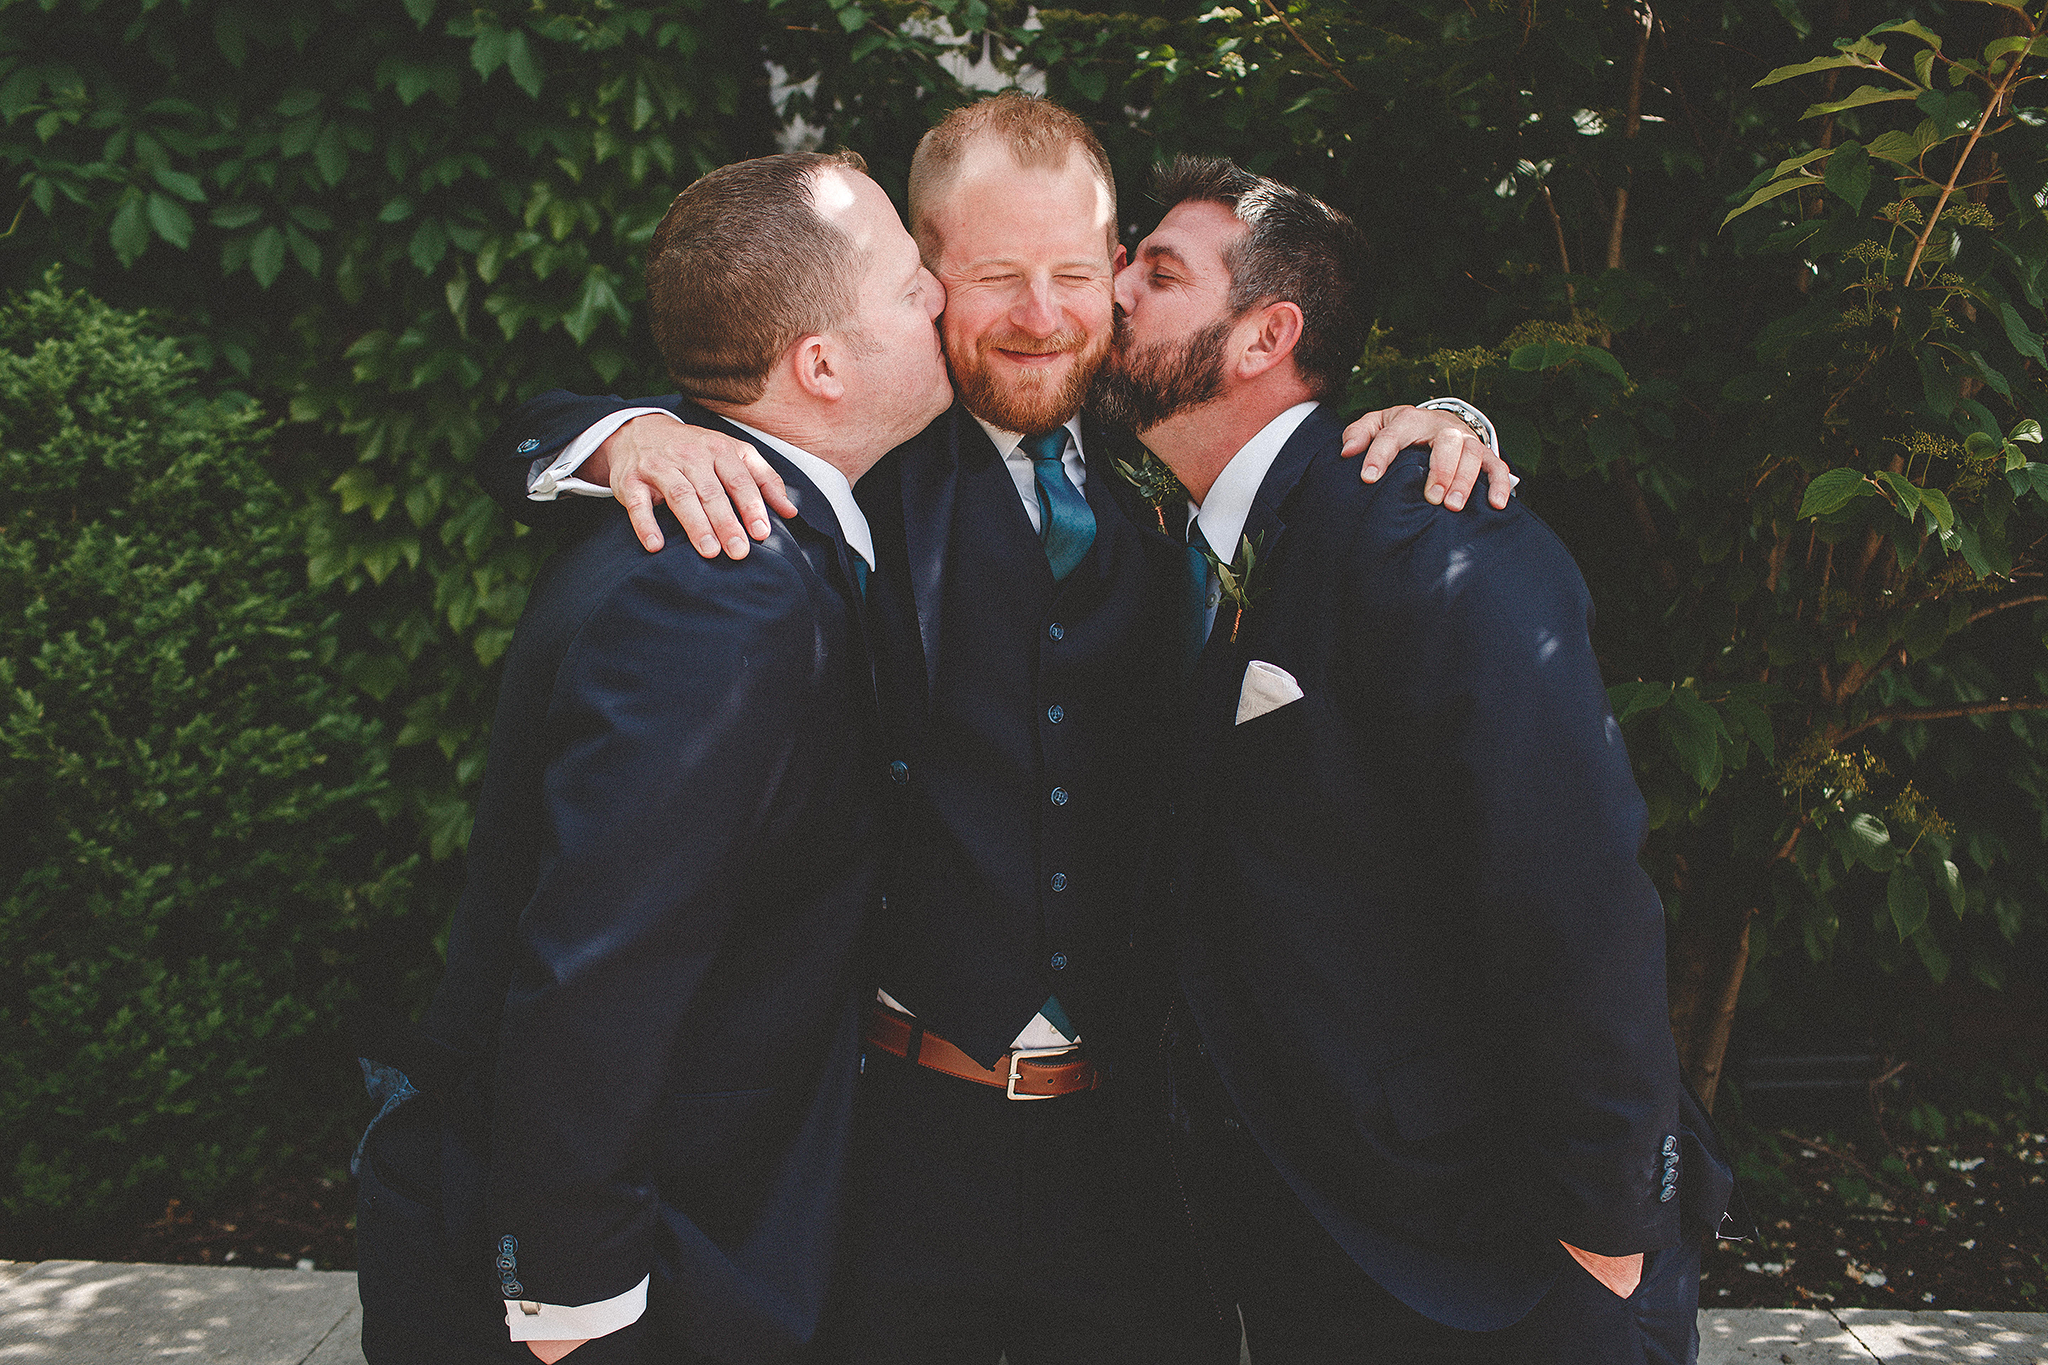 groomsmen kissing groom's cheeks | the ivy house milwaukee wedding photographer | chrissy deming